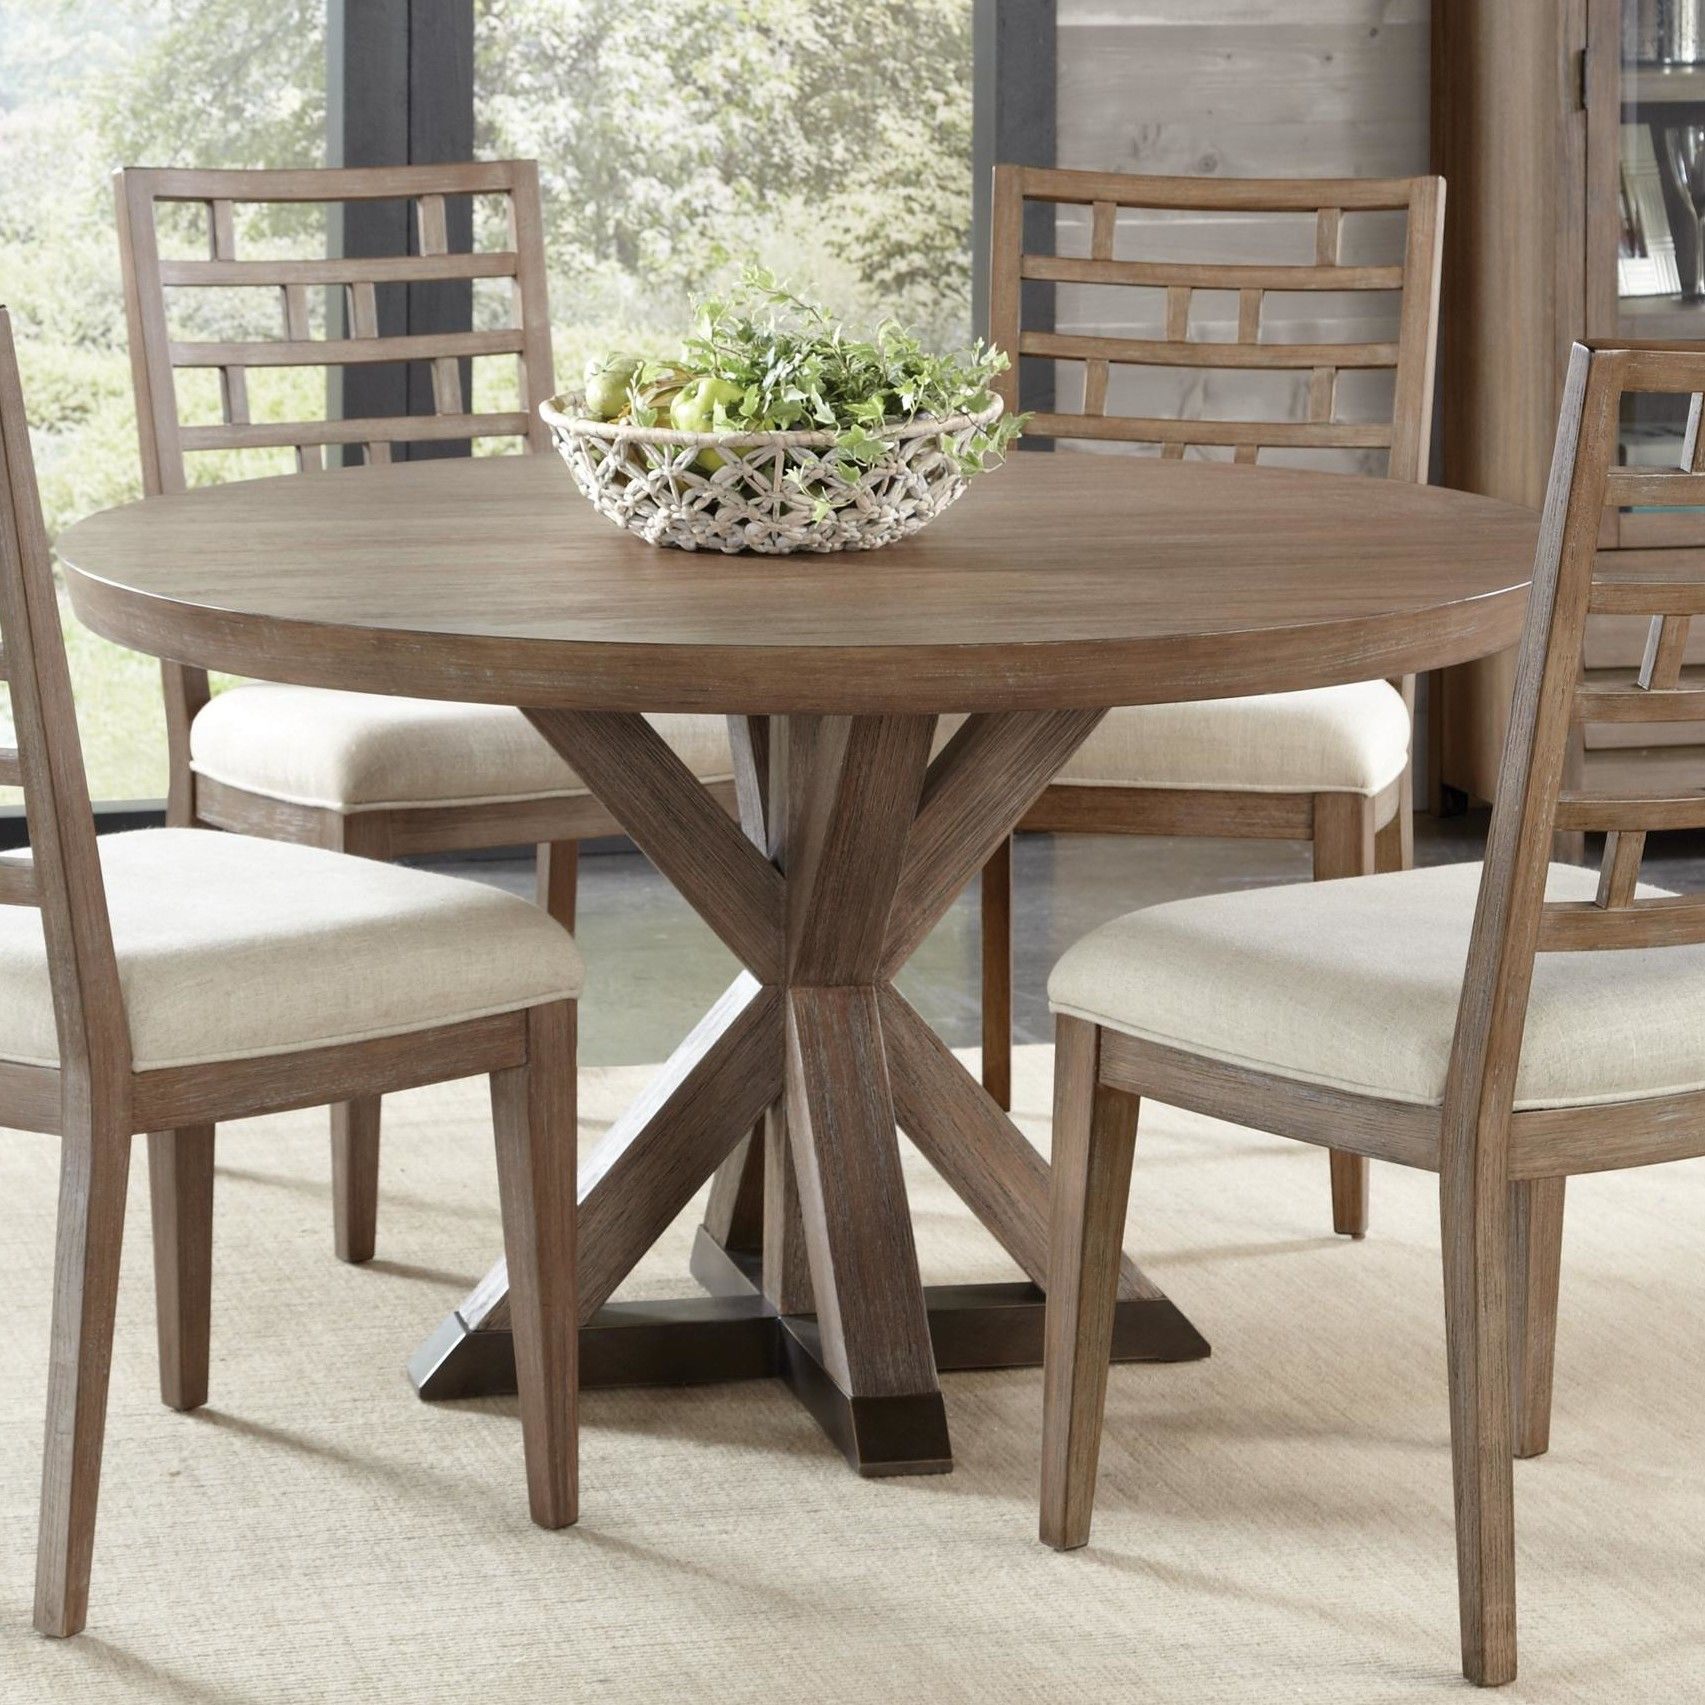 Riverside Furniture Mirabelle Dining Table  Dining table in